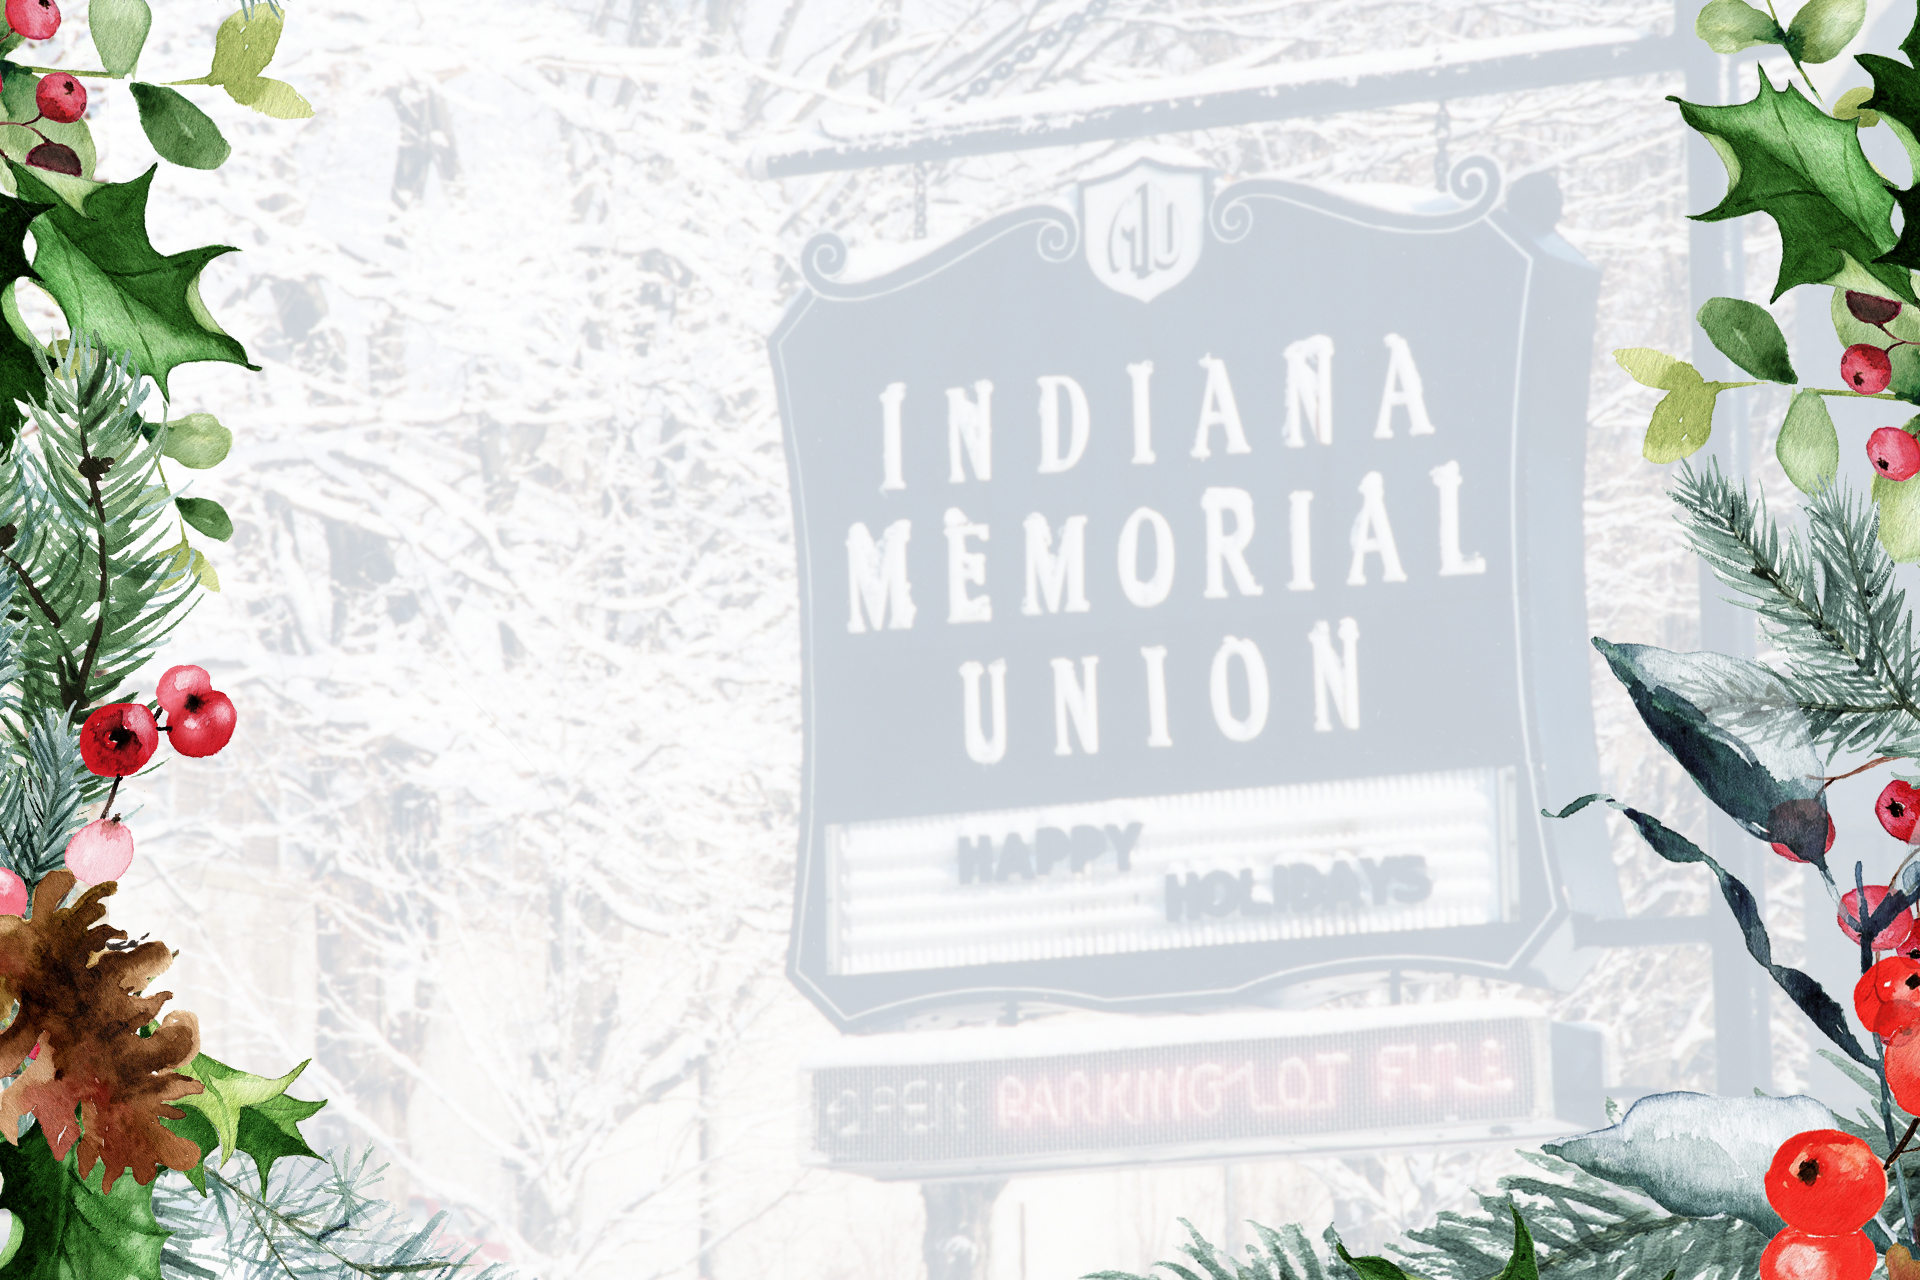 A ghosted photos shows the Indiana Memorial Union Sign in 1996. A festive border is applied.